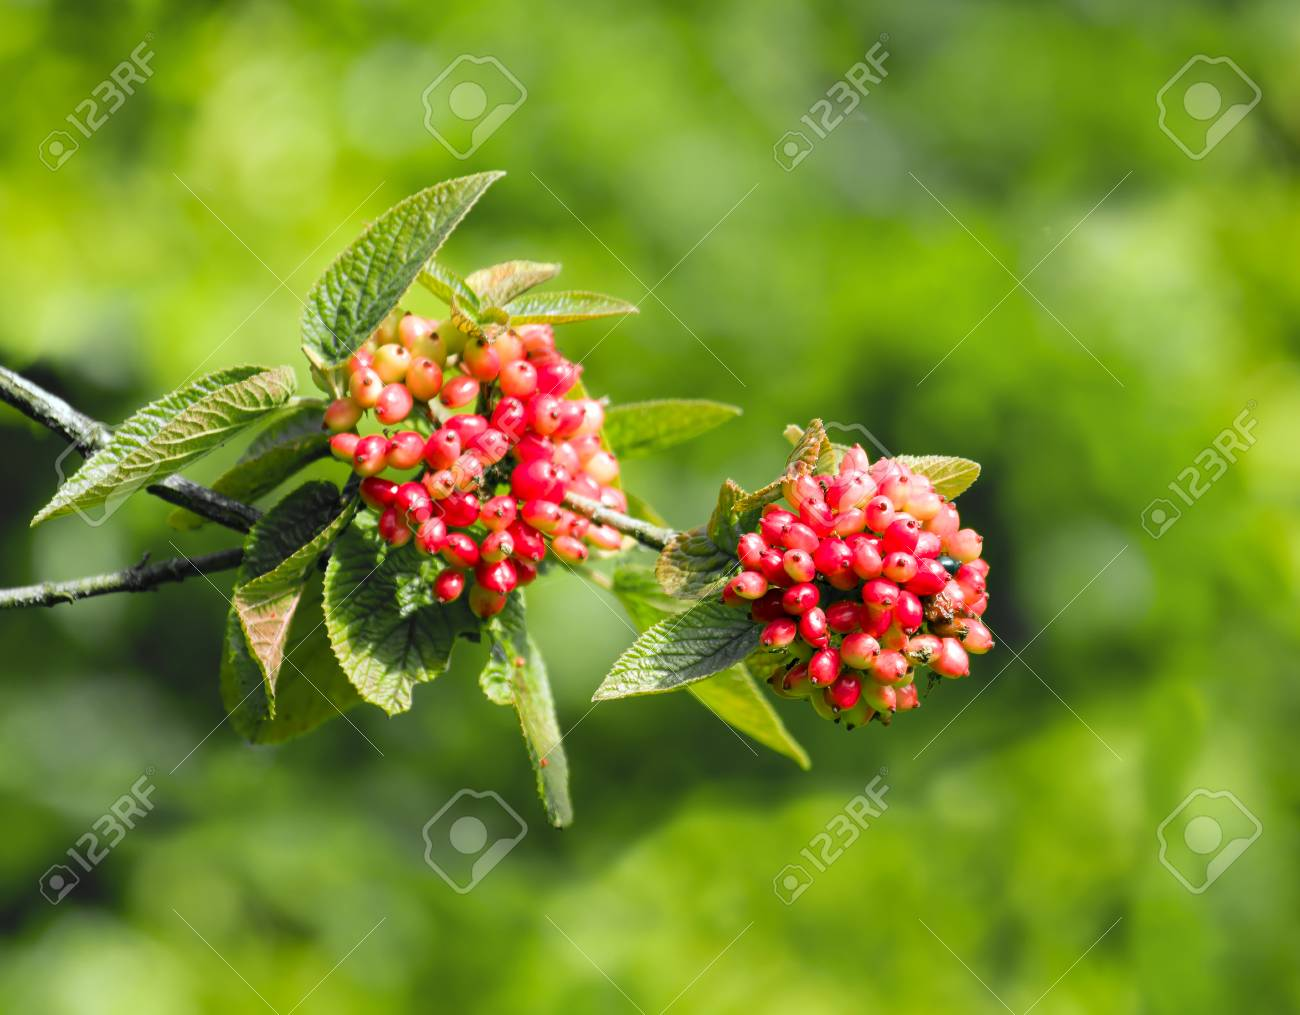 Fruiting wild Guelder Rose in English countryside, showing berries